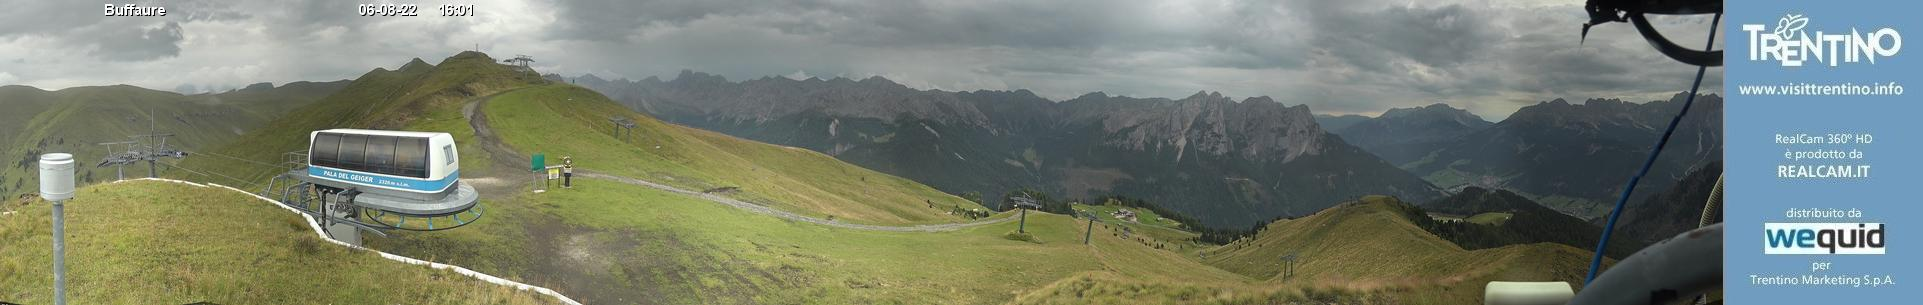 Webcam panorama realtime 360° Pozza di Fassa - Buffaure - Altitude: 2,354 metresArea: Col de Valvacin Panoramic viewpoint: 360° real time webcam. Panoramic over the ski area Pozza-Buffaure. From the left - Jumela Valley (Sassolungo group and Pordoi in the background), San Nicolò Valley (towered above by Col Ombert), Creste di ...